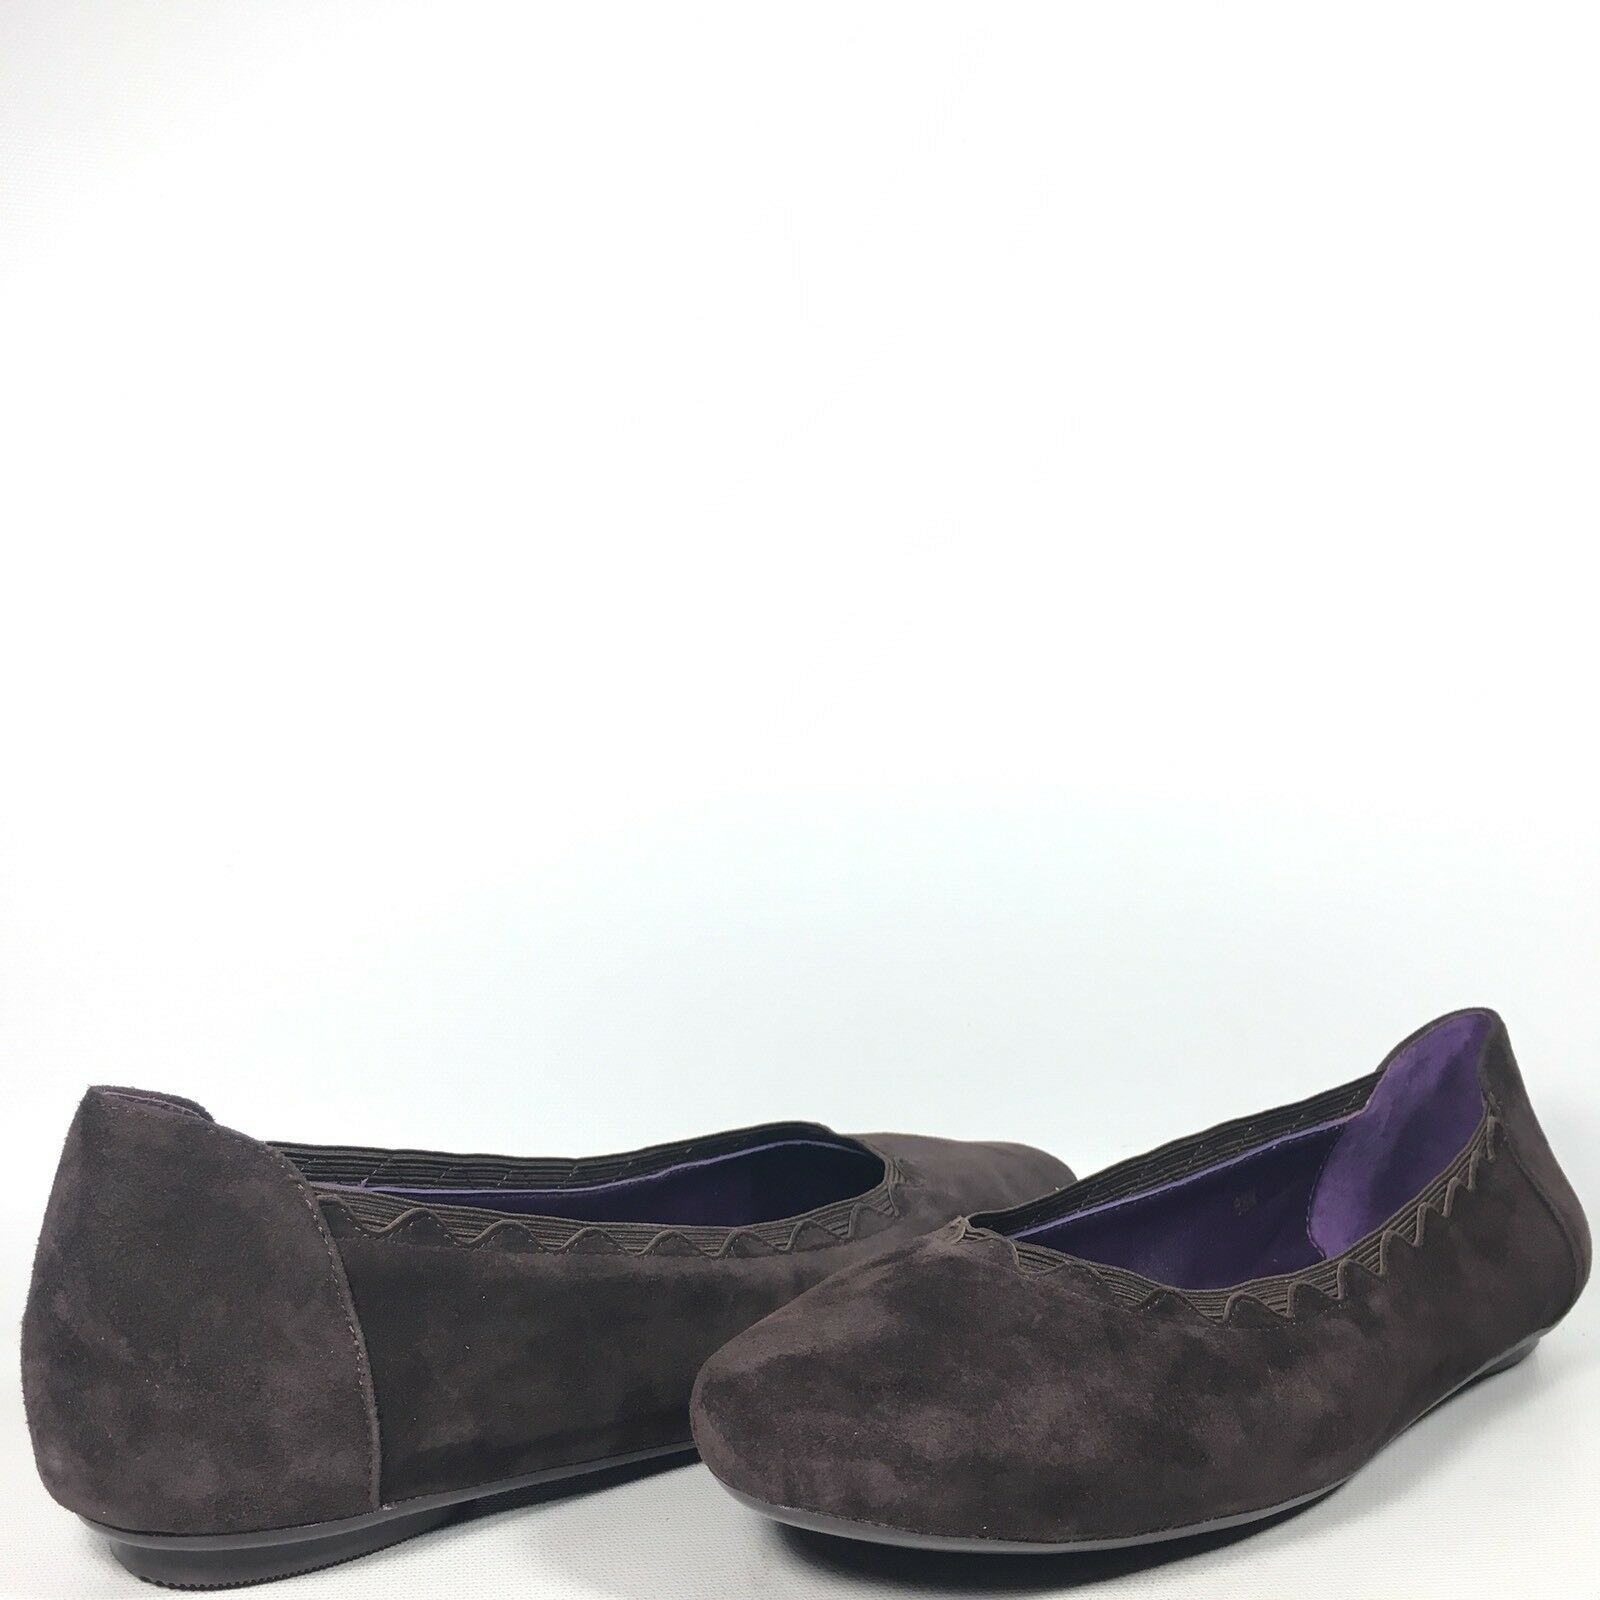 "VANELi VANELi VANELi Purple Collection ""Busby"" Womens 9.5 M Brown Suede Elastic Ballet Flats 96aa7a"